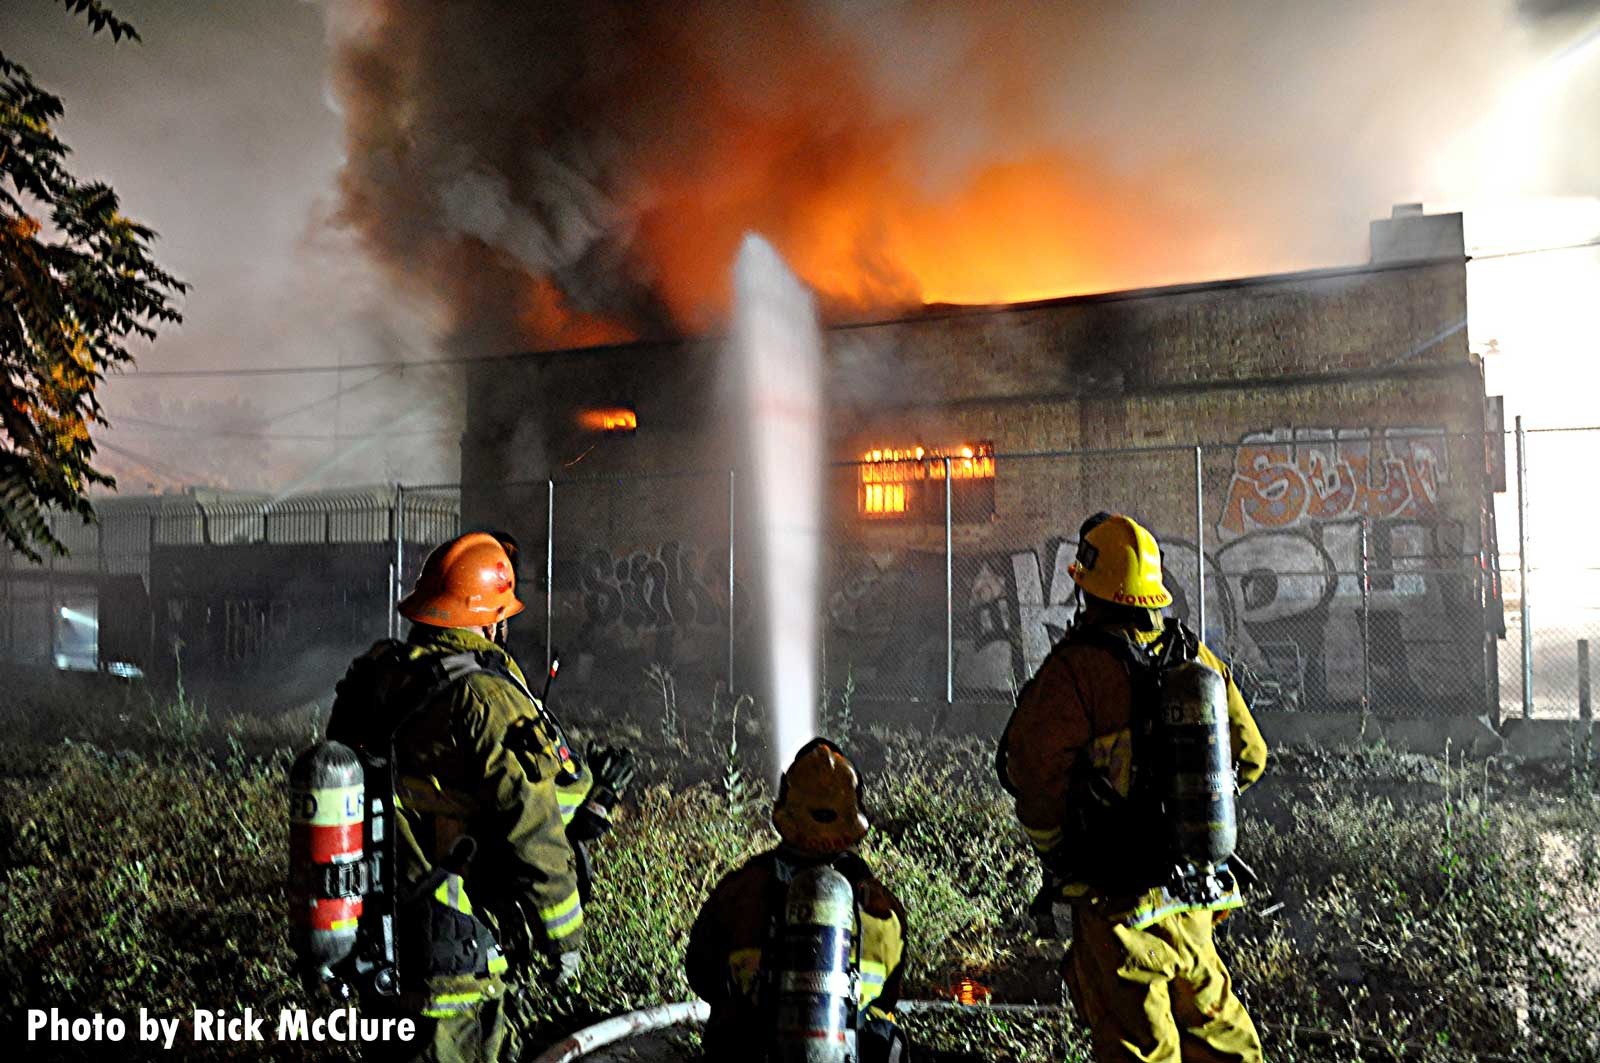 LAFD control a hoseline on the exterior of the fire